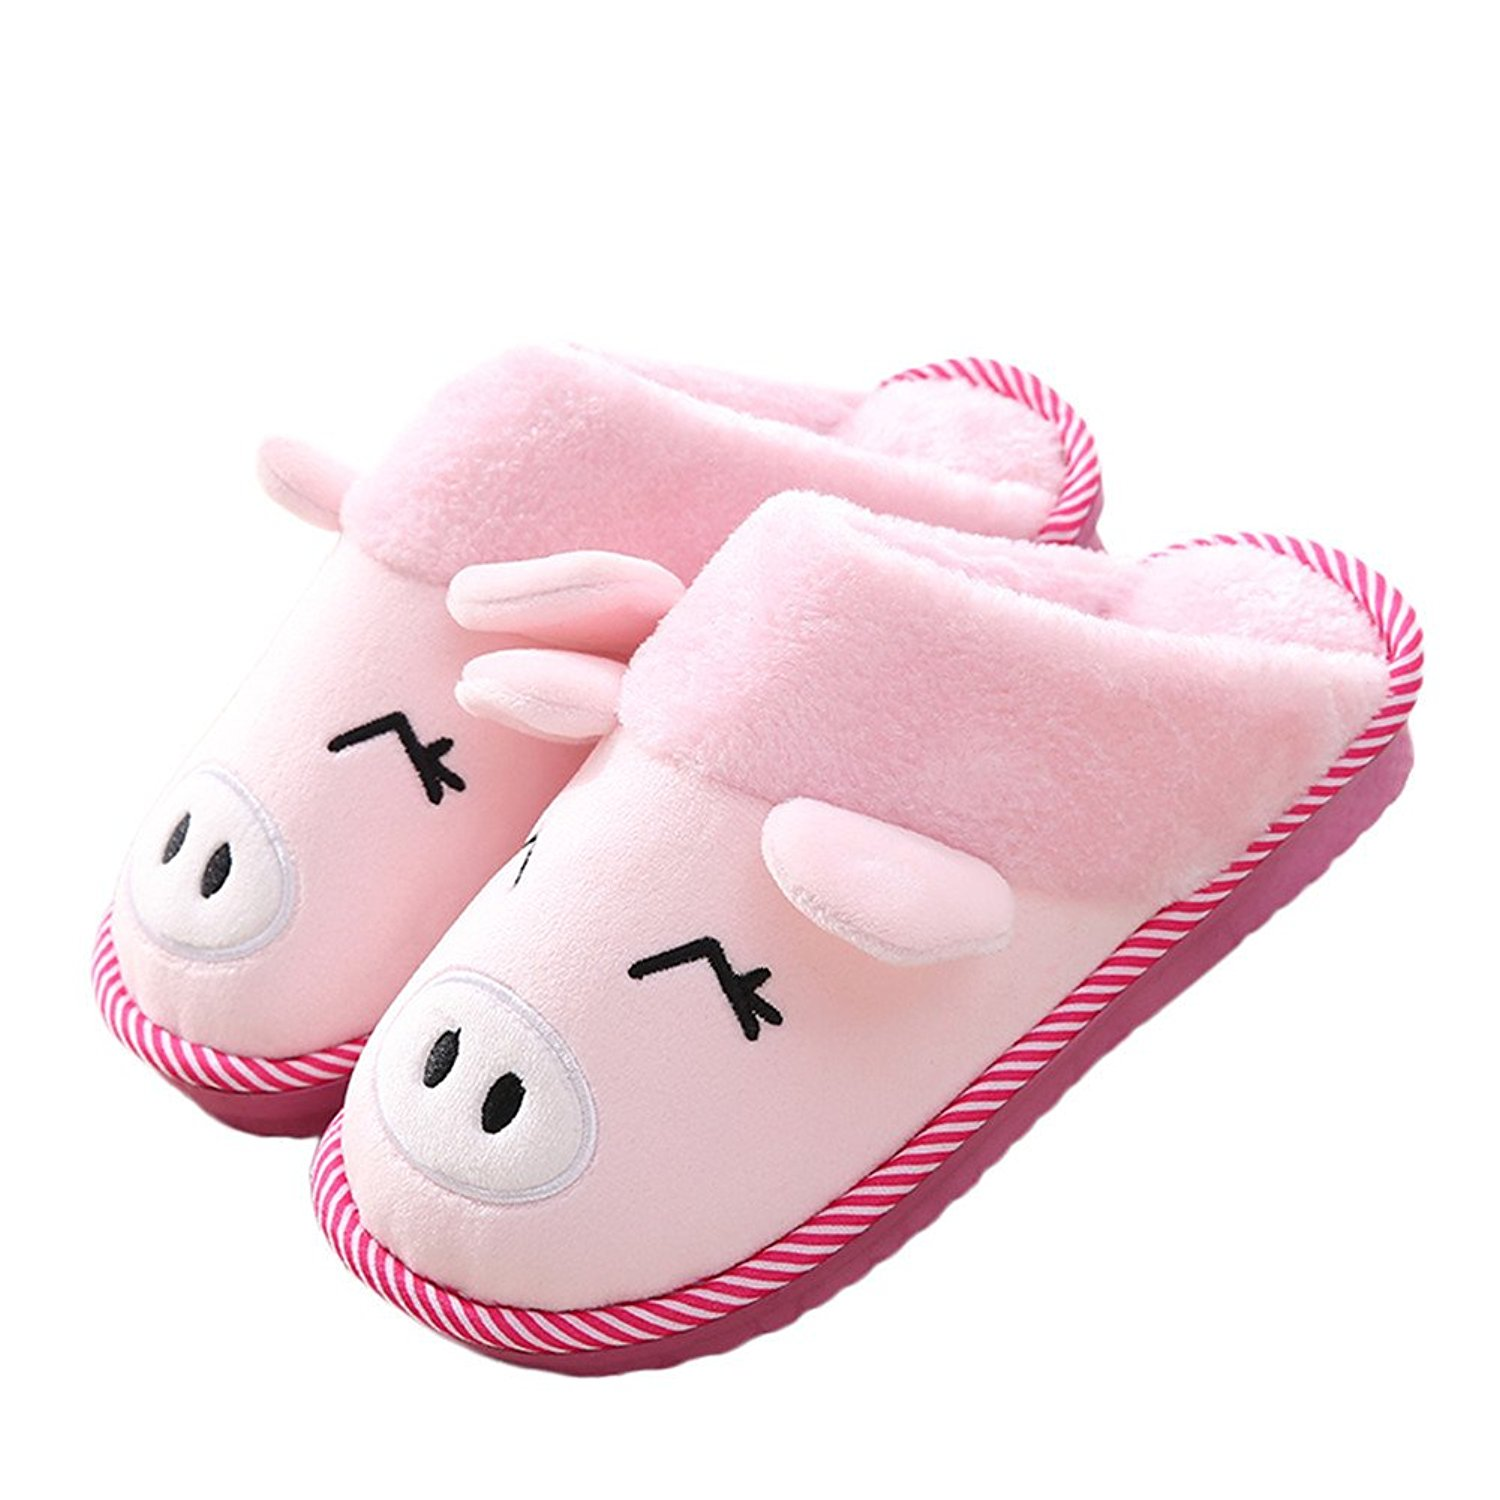 4796a900e30fbf Get Quotations · Winter Slippers Womens and Mens Indoor Warm Fleece Slippers  Cute Cartoon Pig Winter Soft Cozy Booties